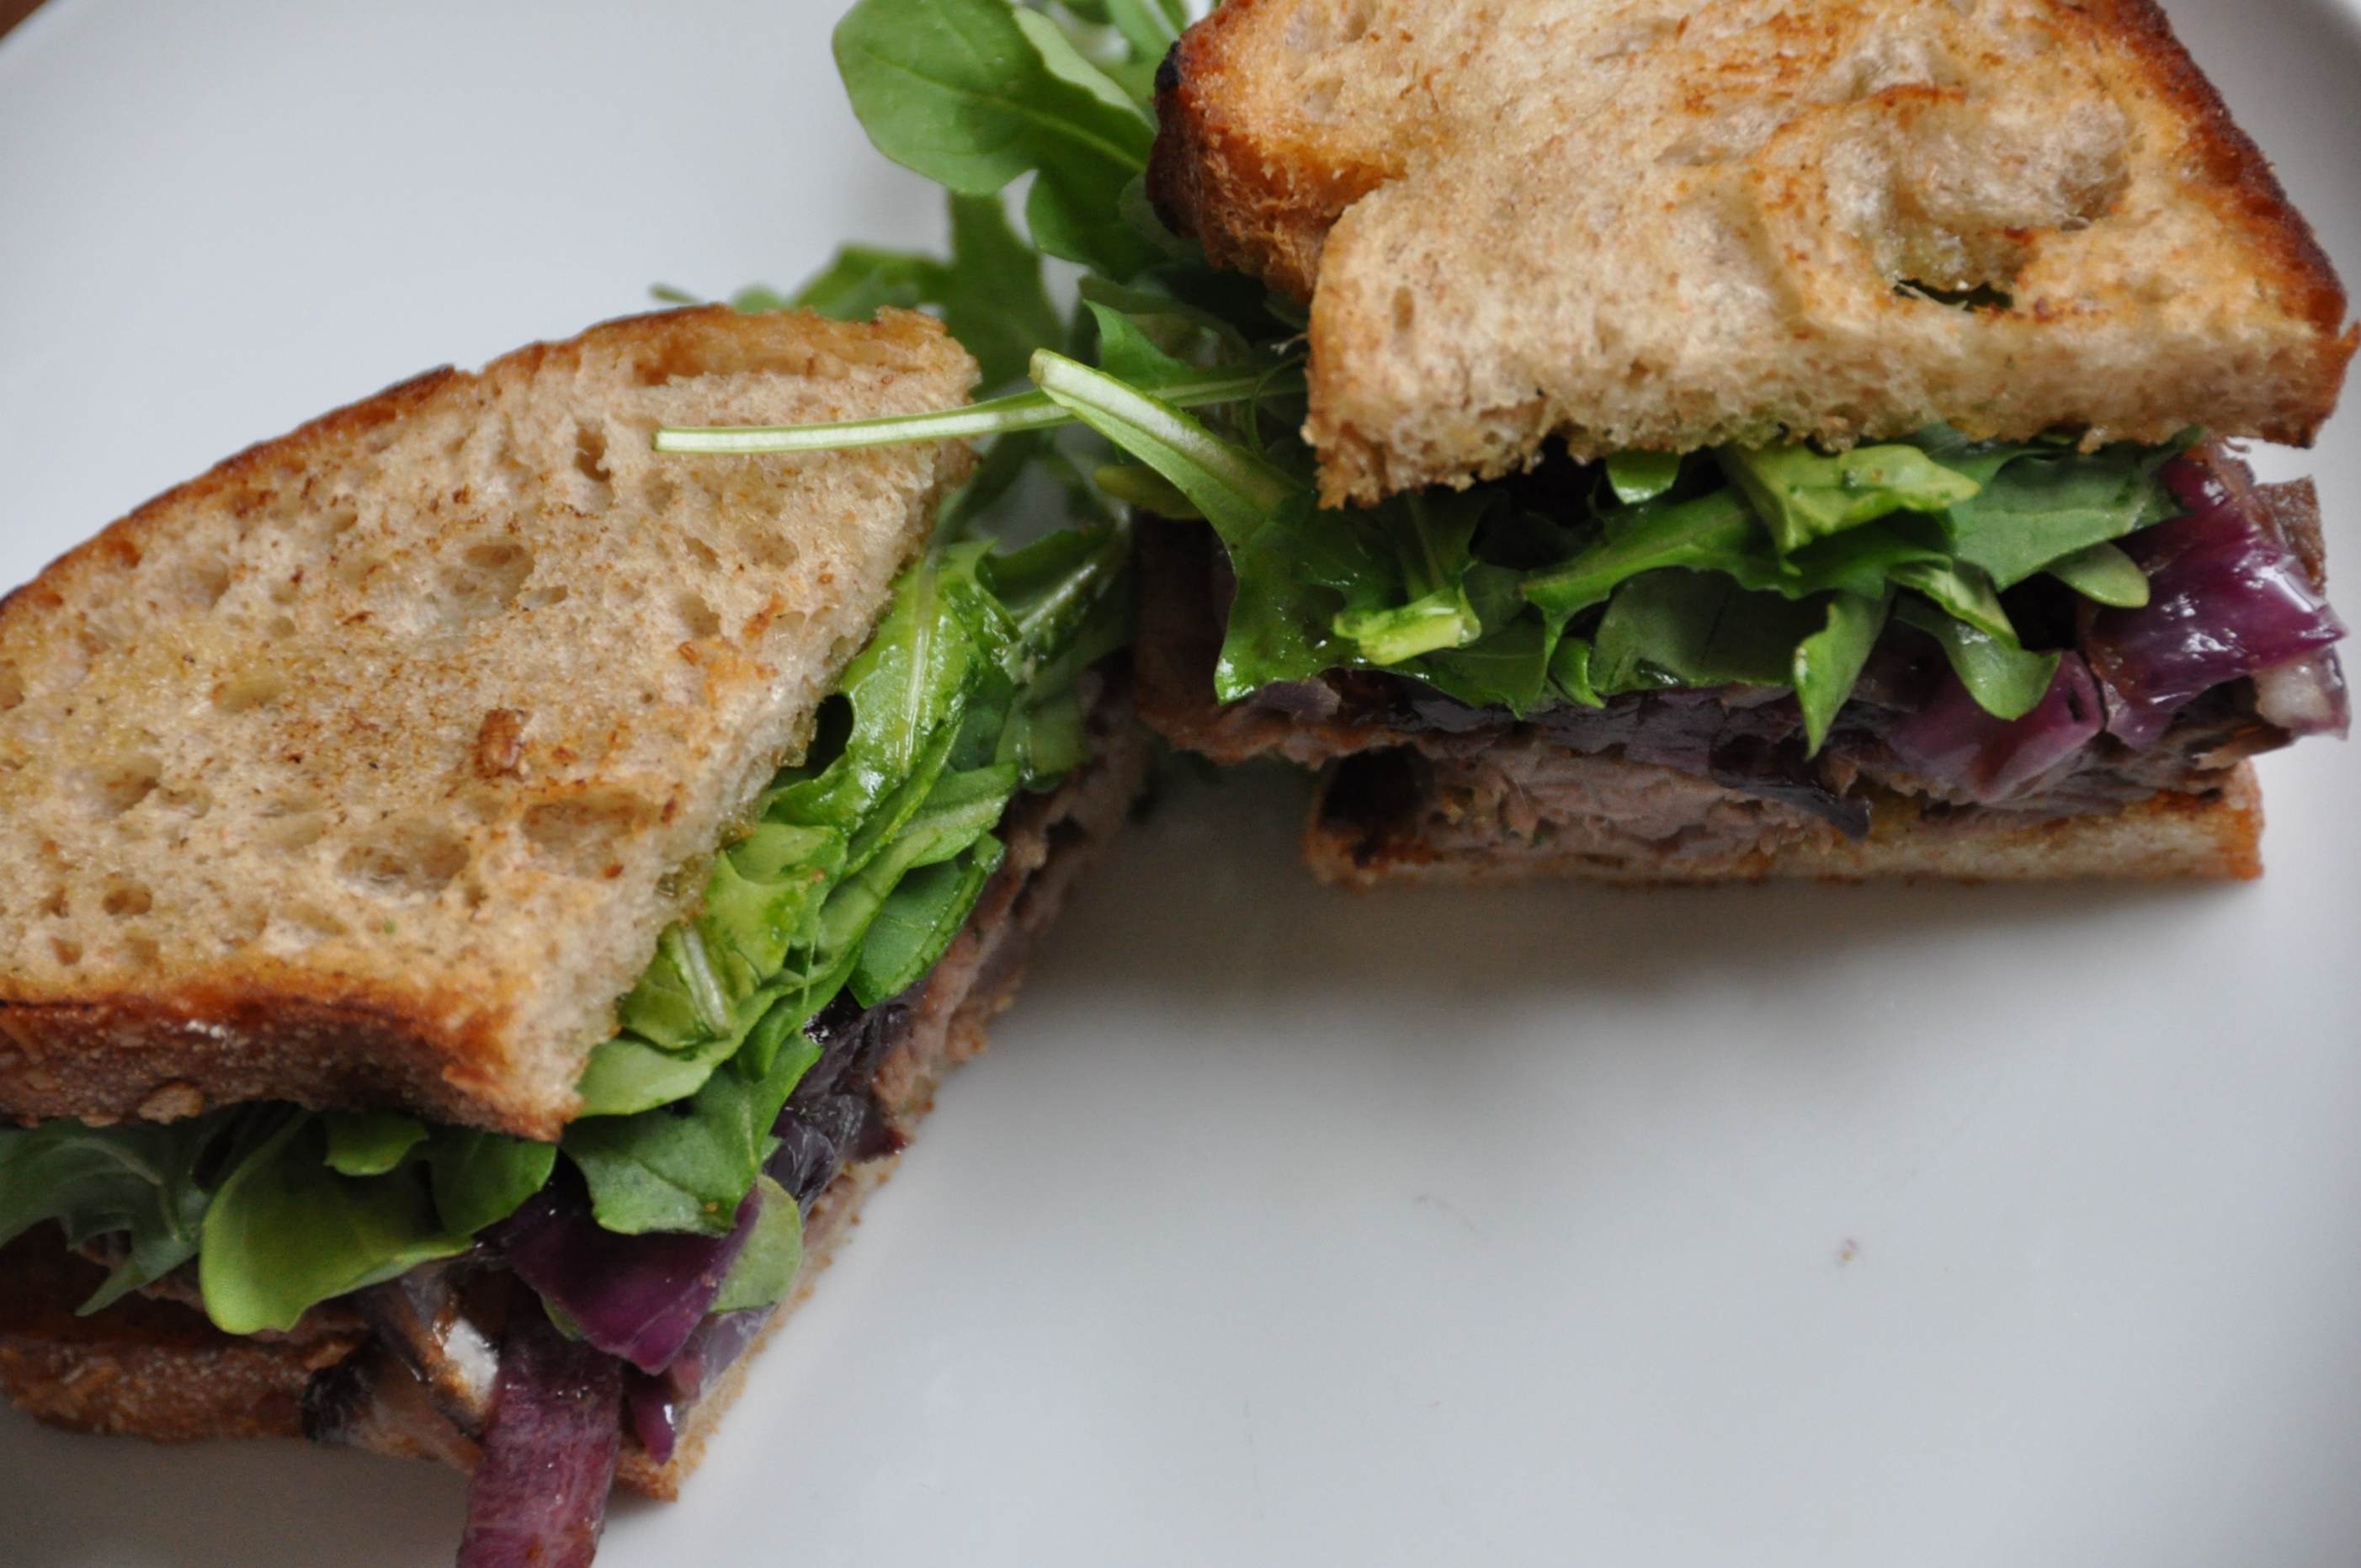 Warm Steak Sandwiches with Caramelized Onions